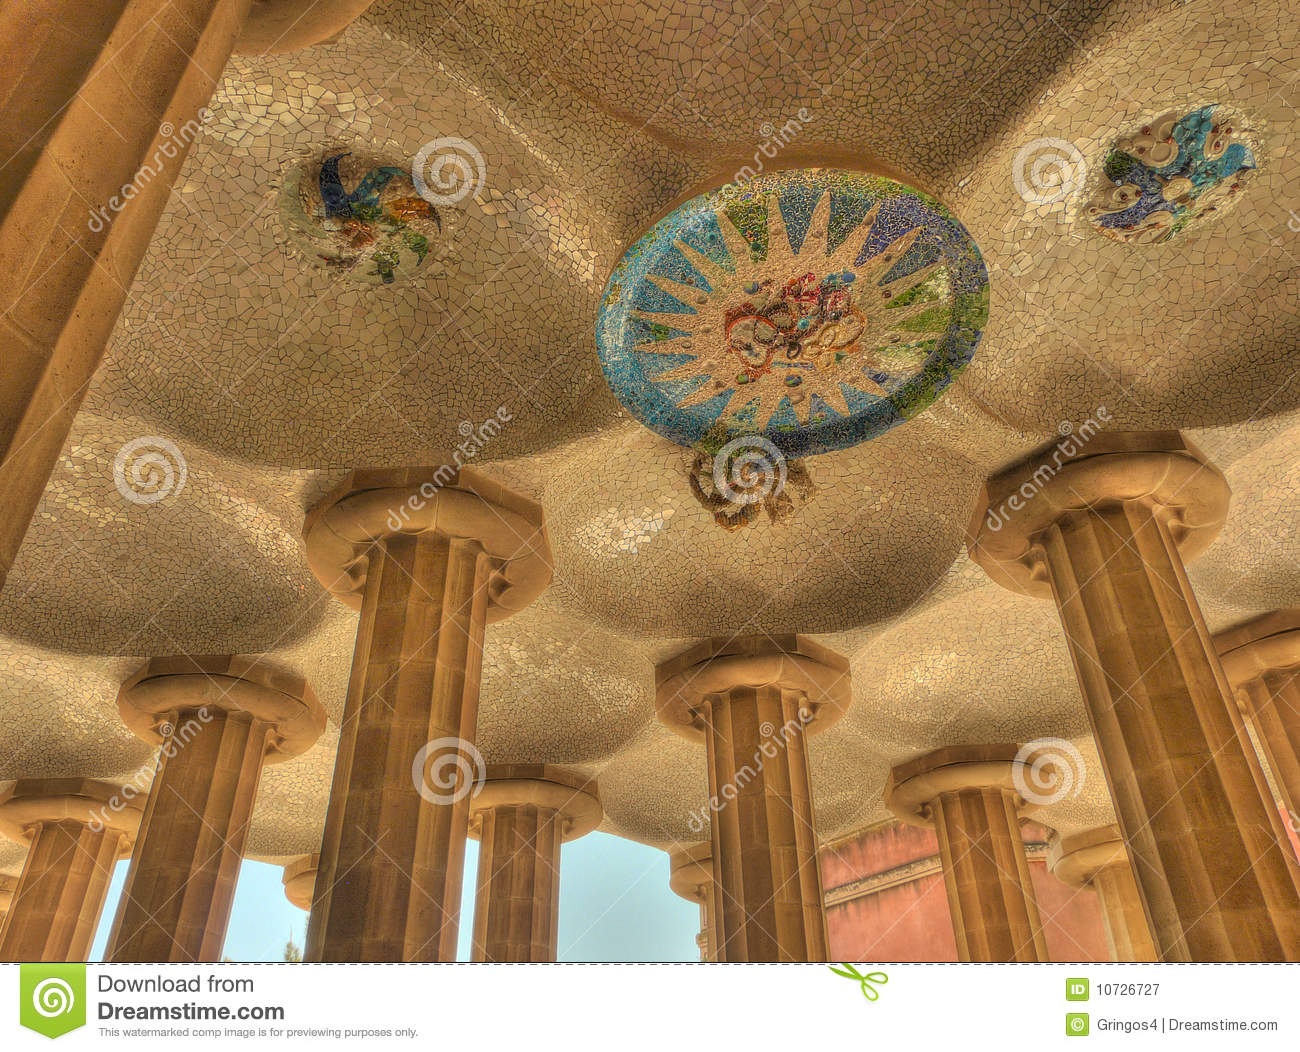 Parc Guell Mosaic Art Ceiling Barcelona Spain Stock Image